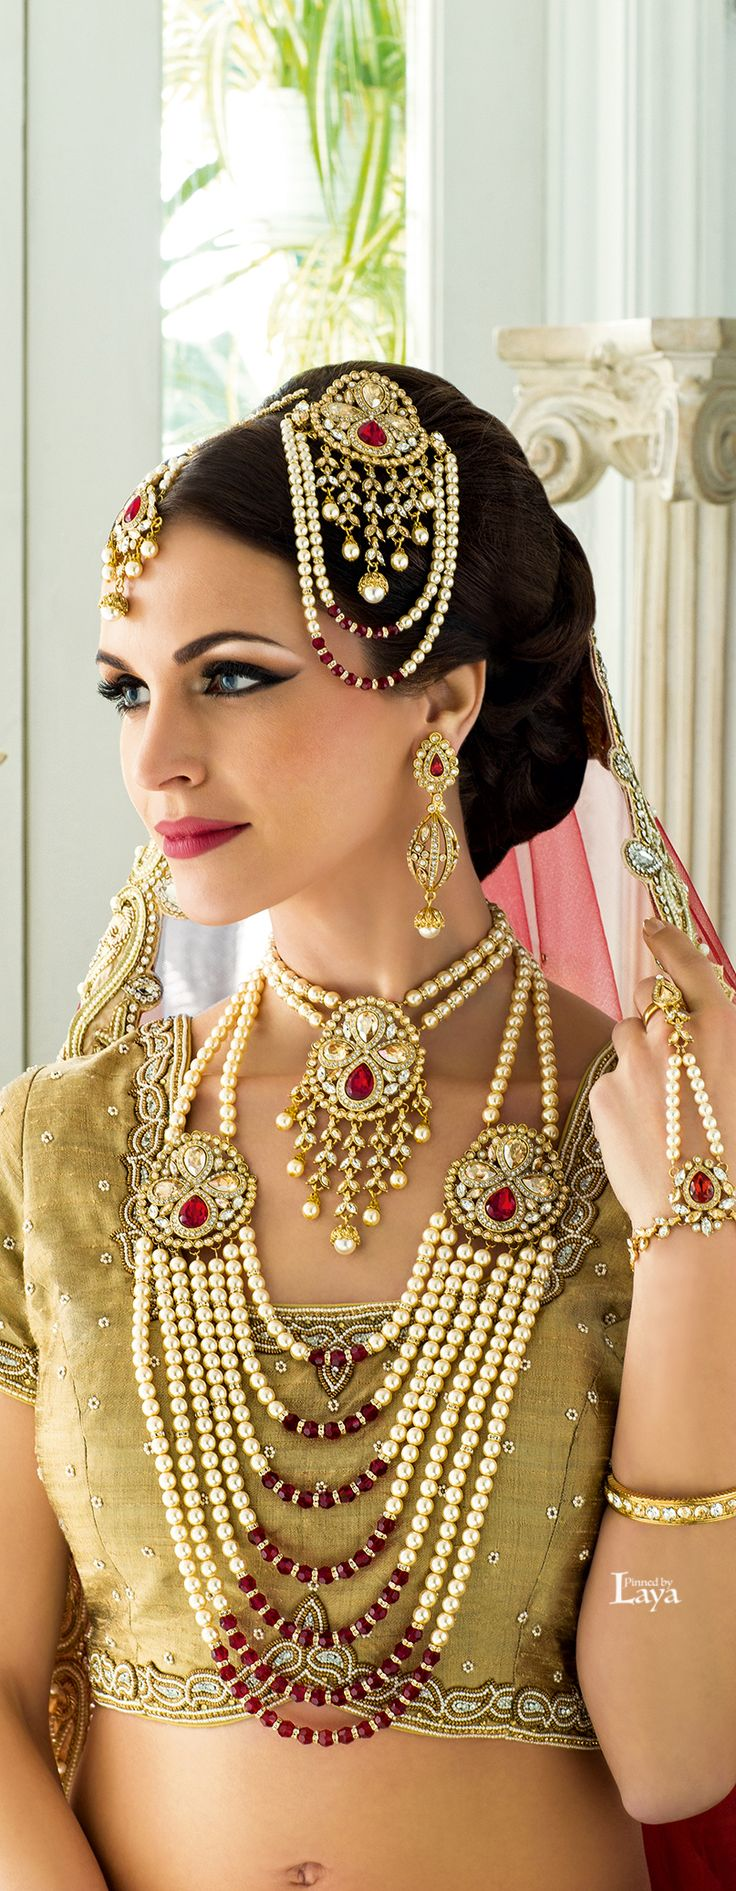 best royalty u jewelry images on pinterest